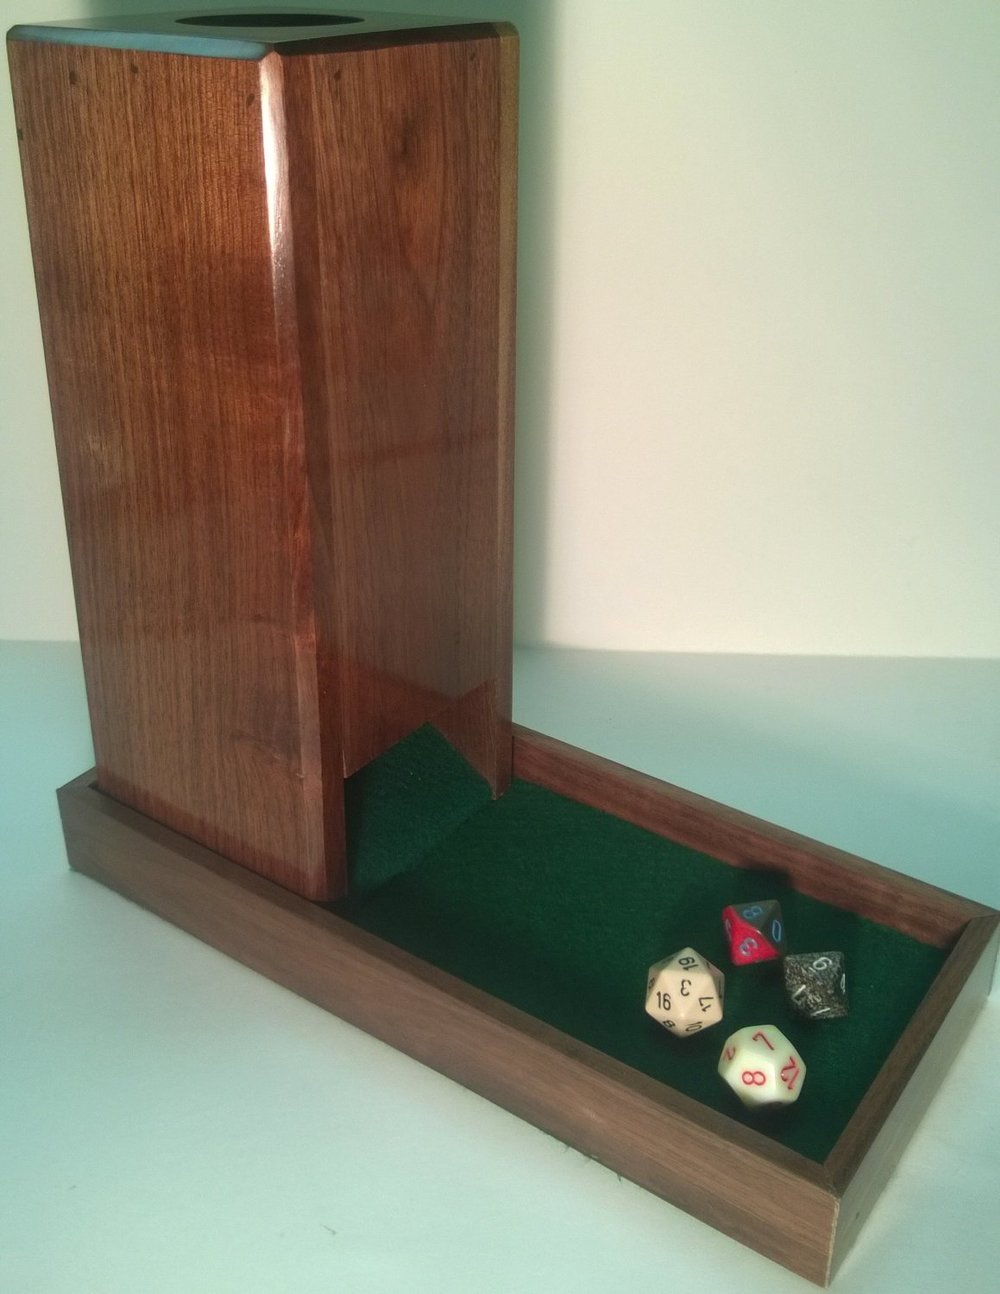 board-game-dice-tower-souza-custom-woodworking-002.jpg